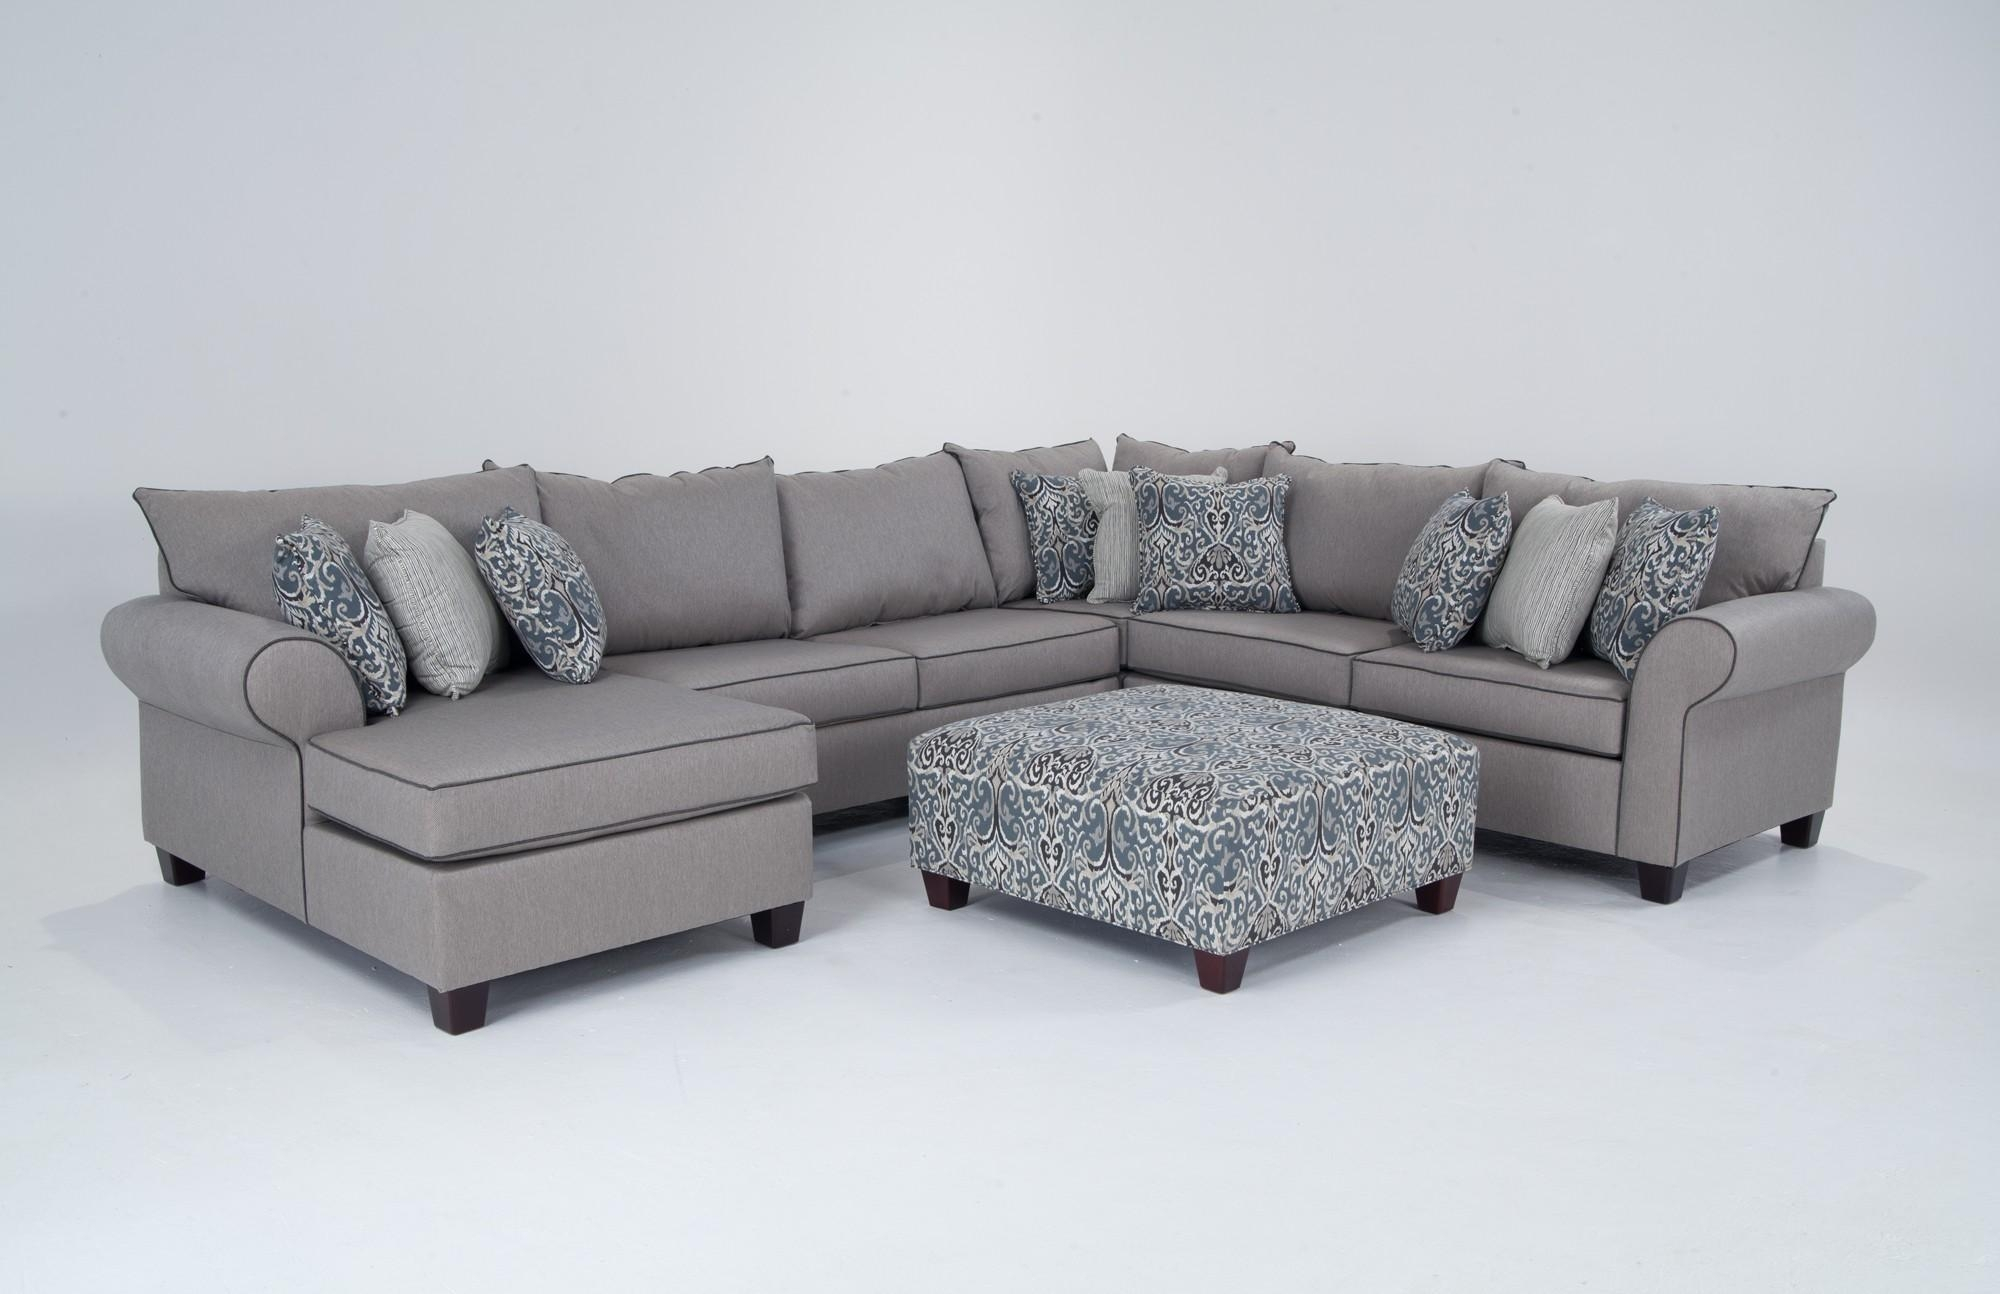 ashton sofa oz design 7 sofala st portland nsw 20 best sofas ideas